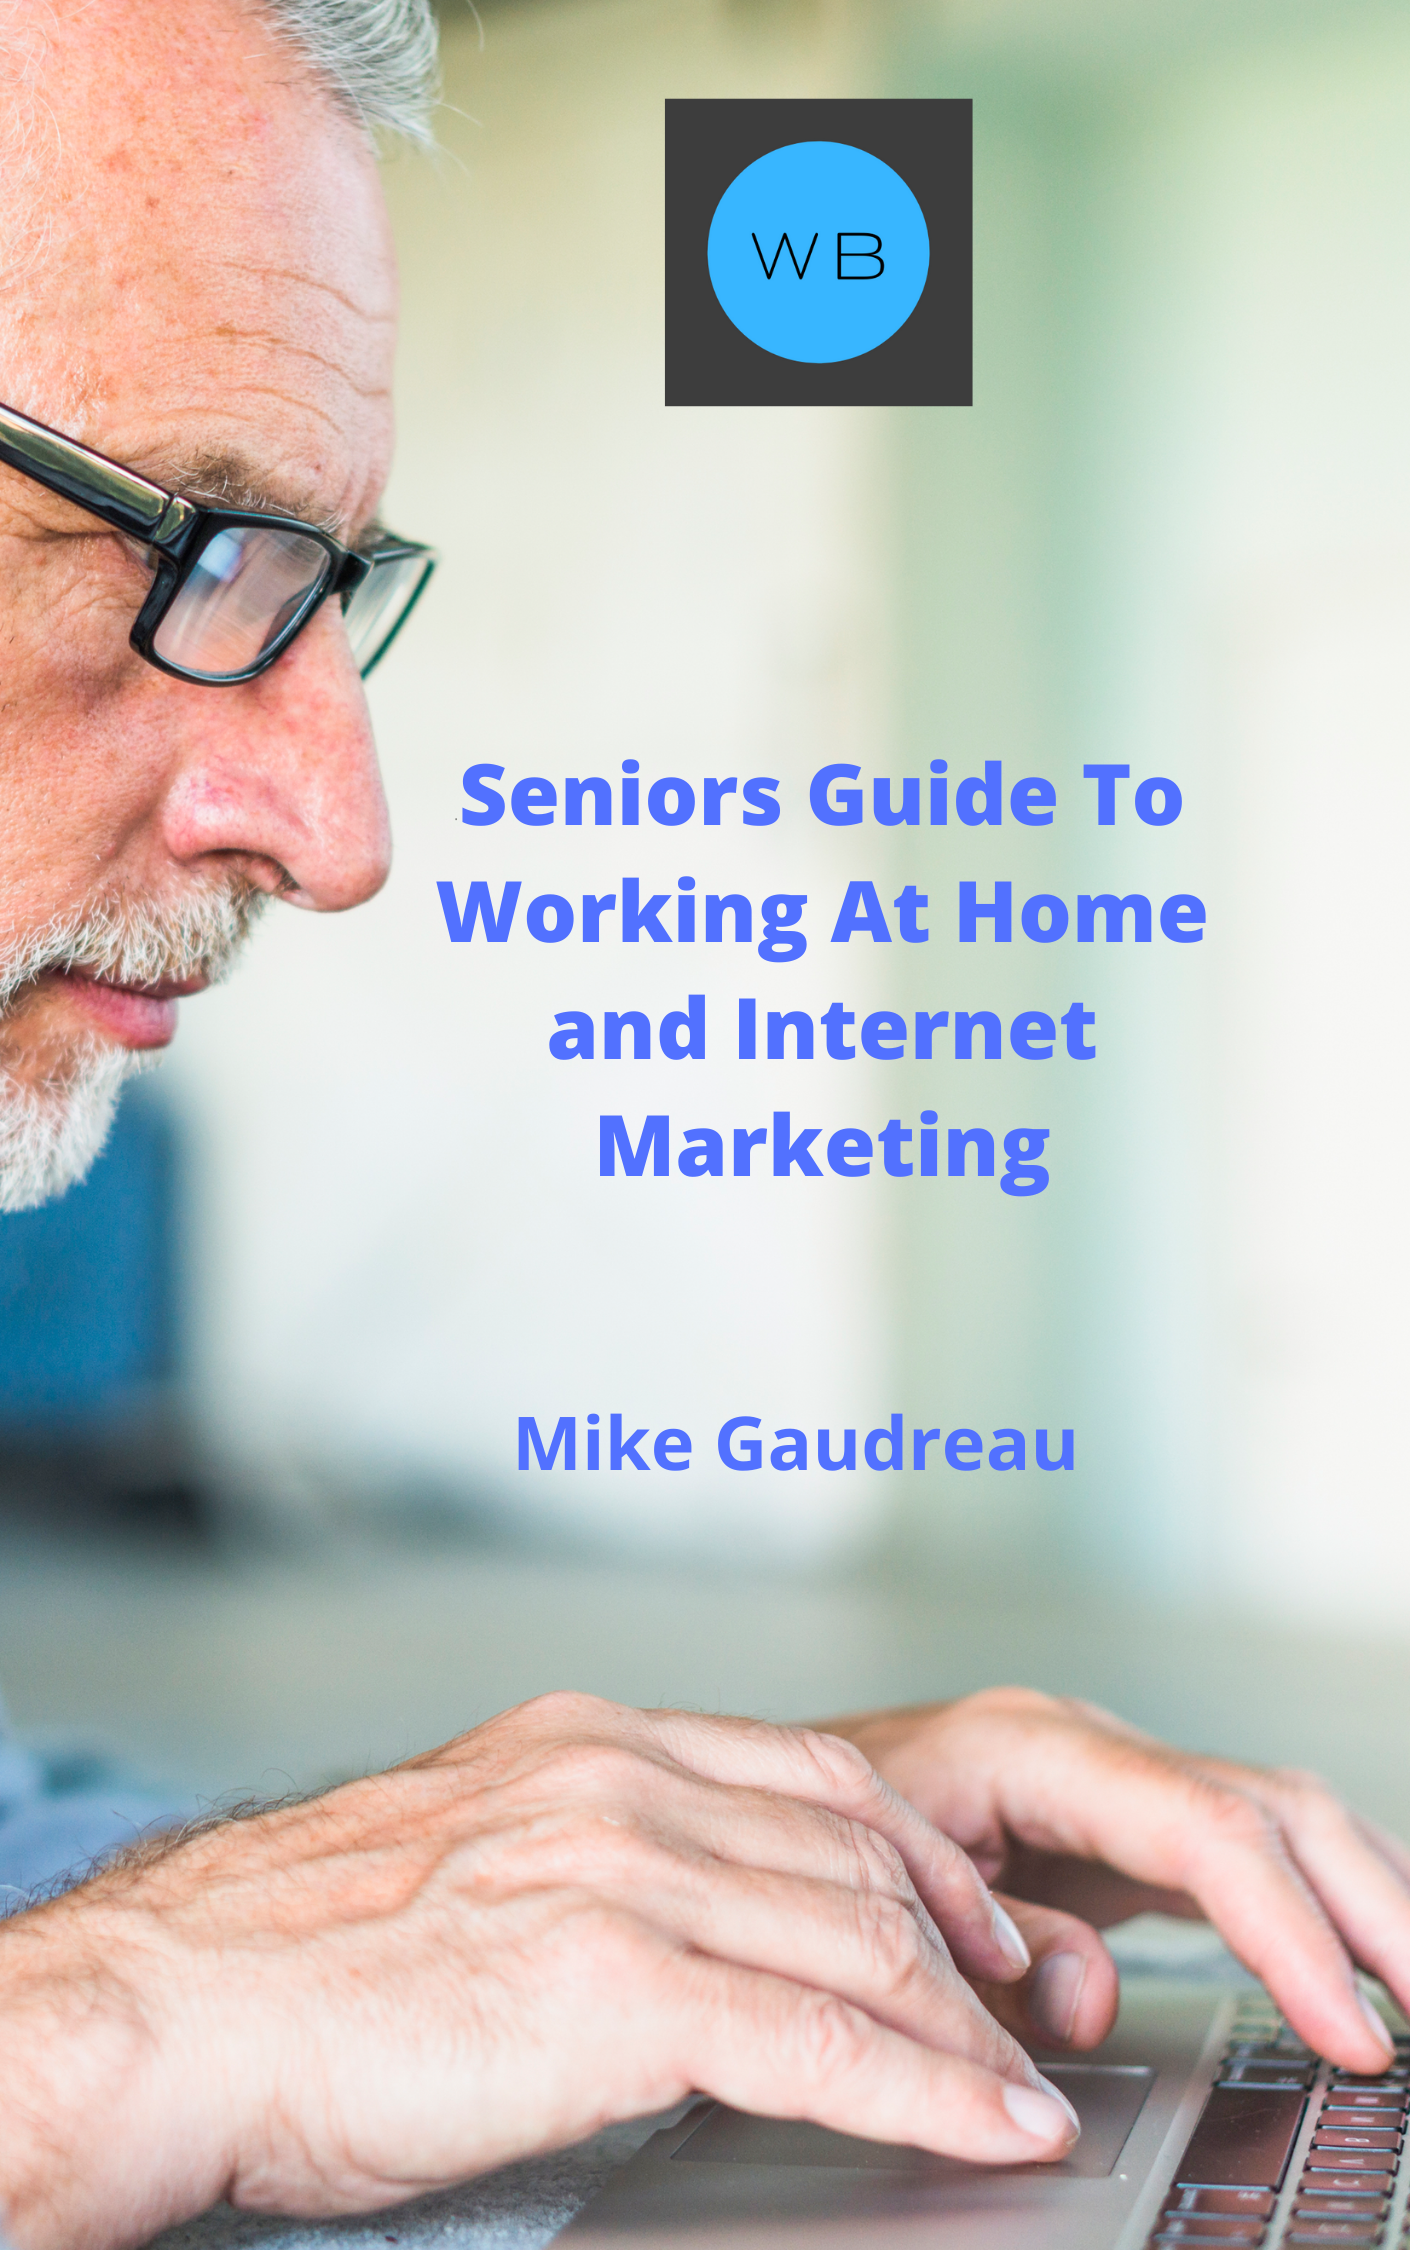 Seniors Guide To Working At Home and Internet Marketing - Deluxe 1